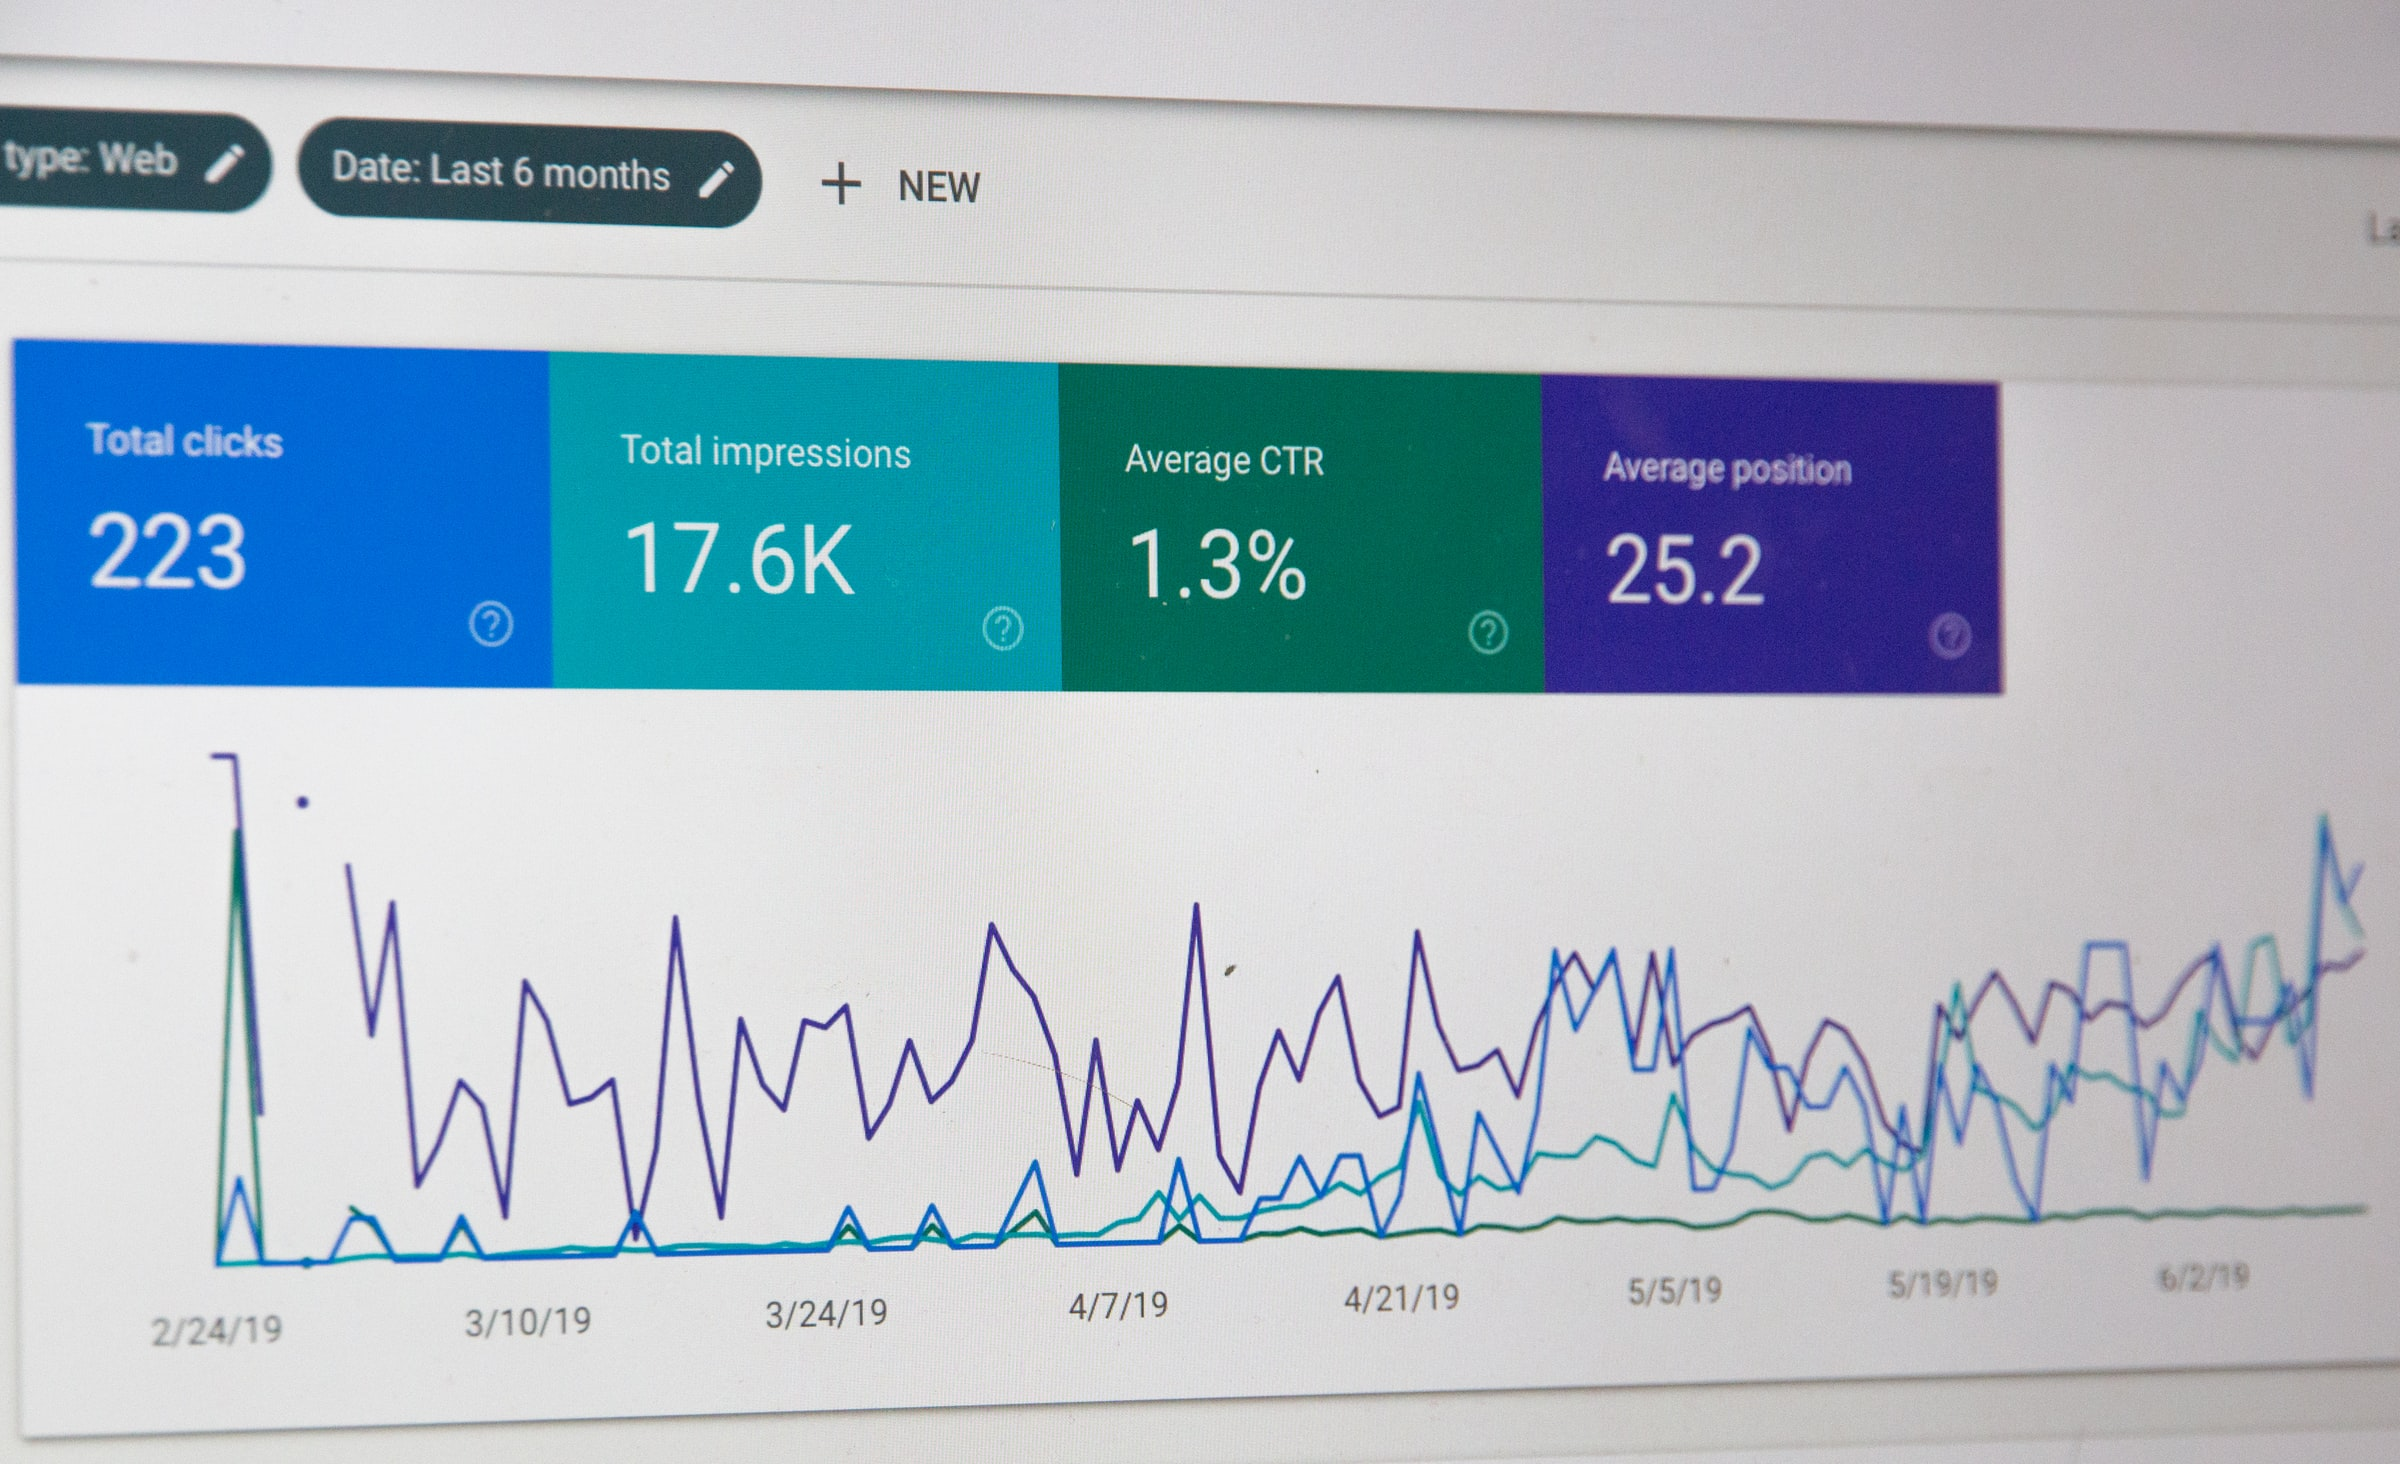 Google Search Console data, not how to edit